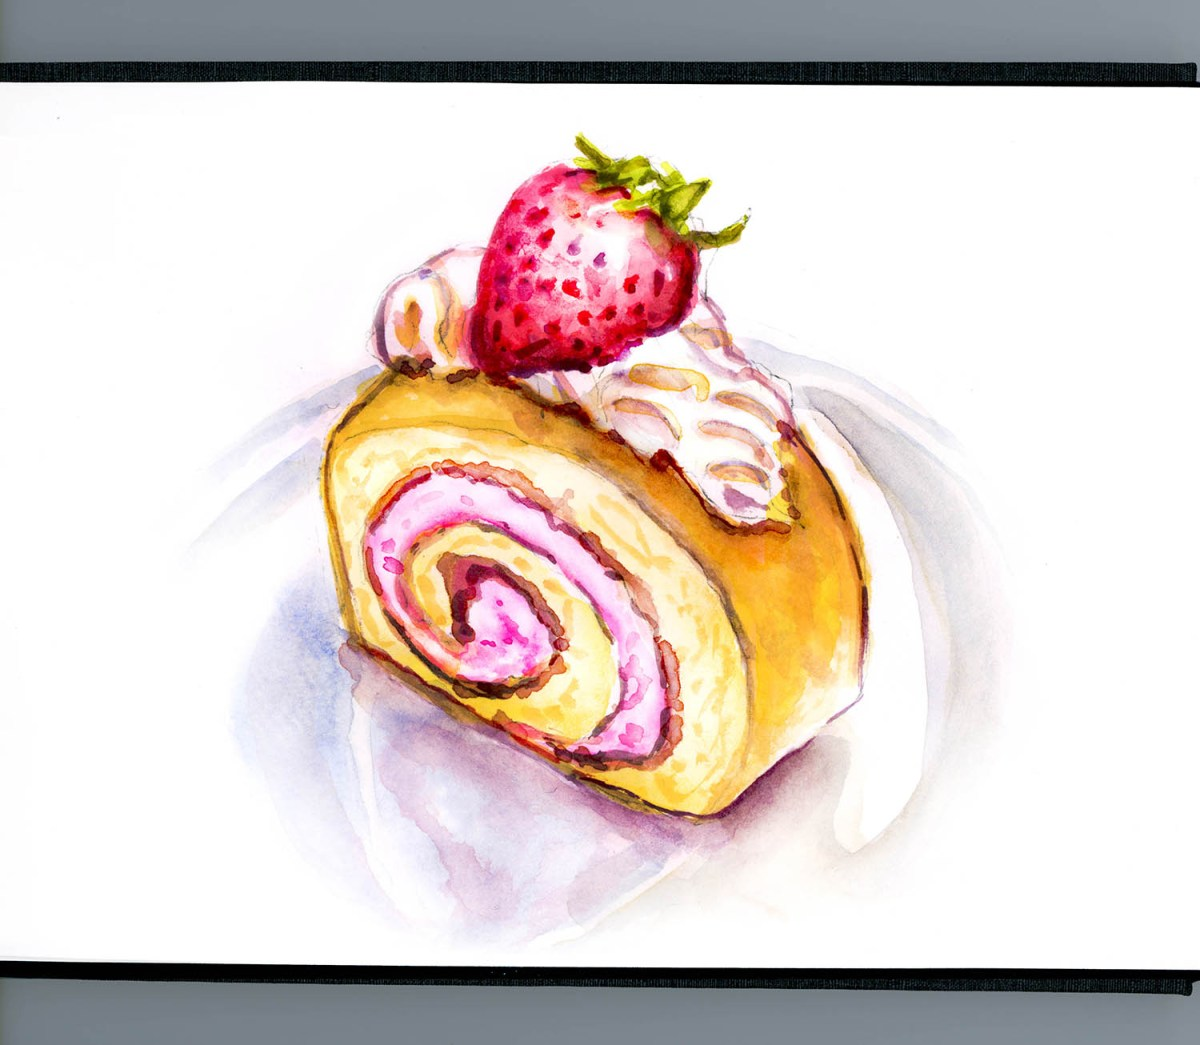 #WorldWatercolorGroup - Day 2 - Strawberry Shortcake Surprise - Doodlewash